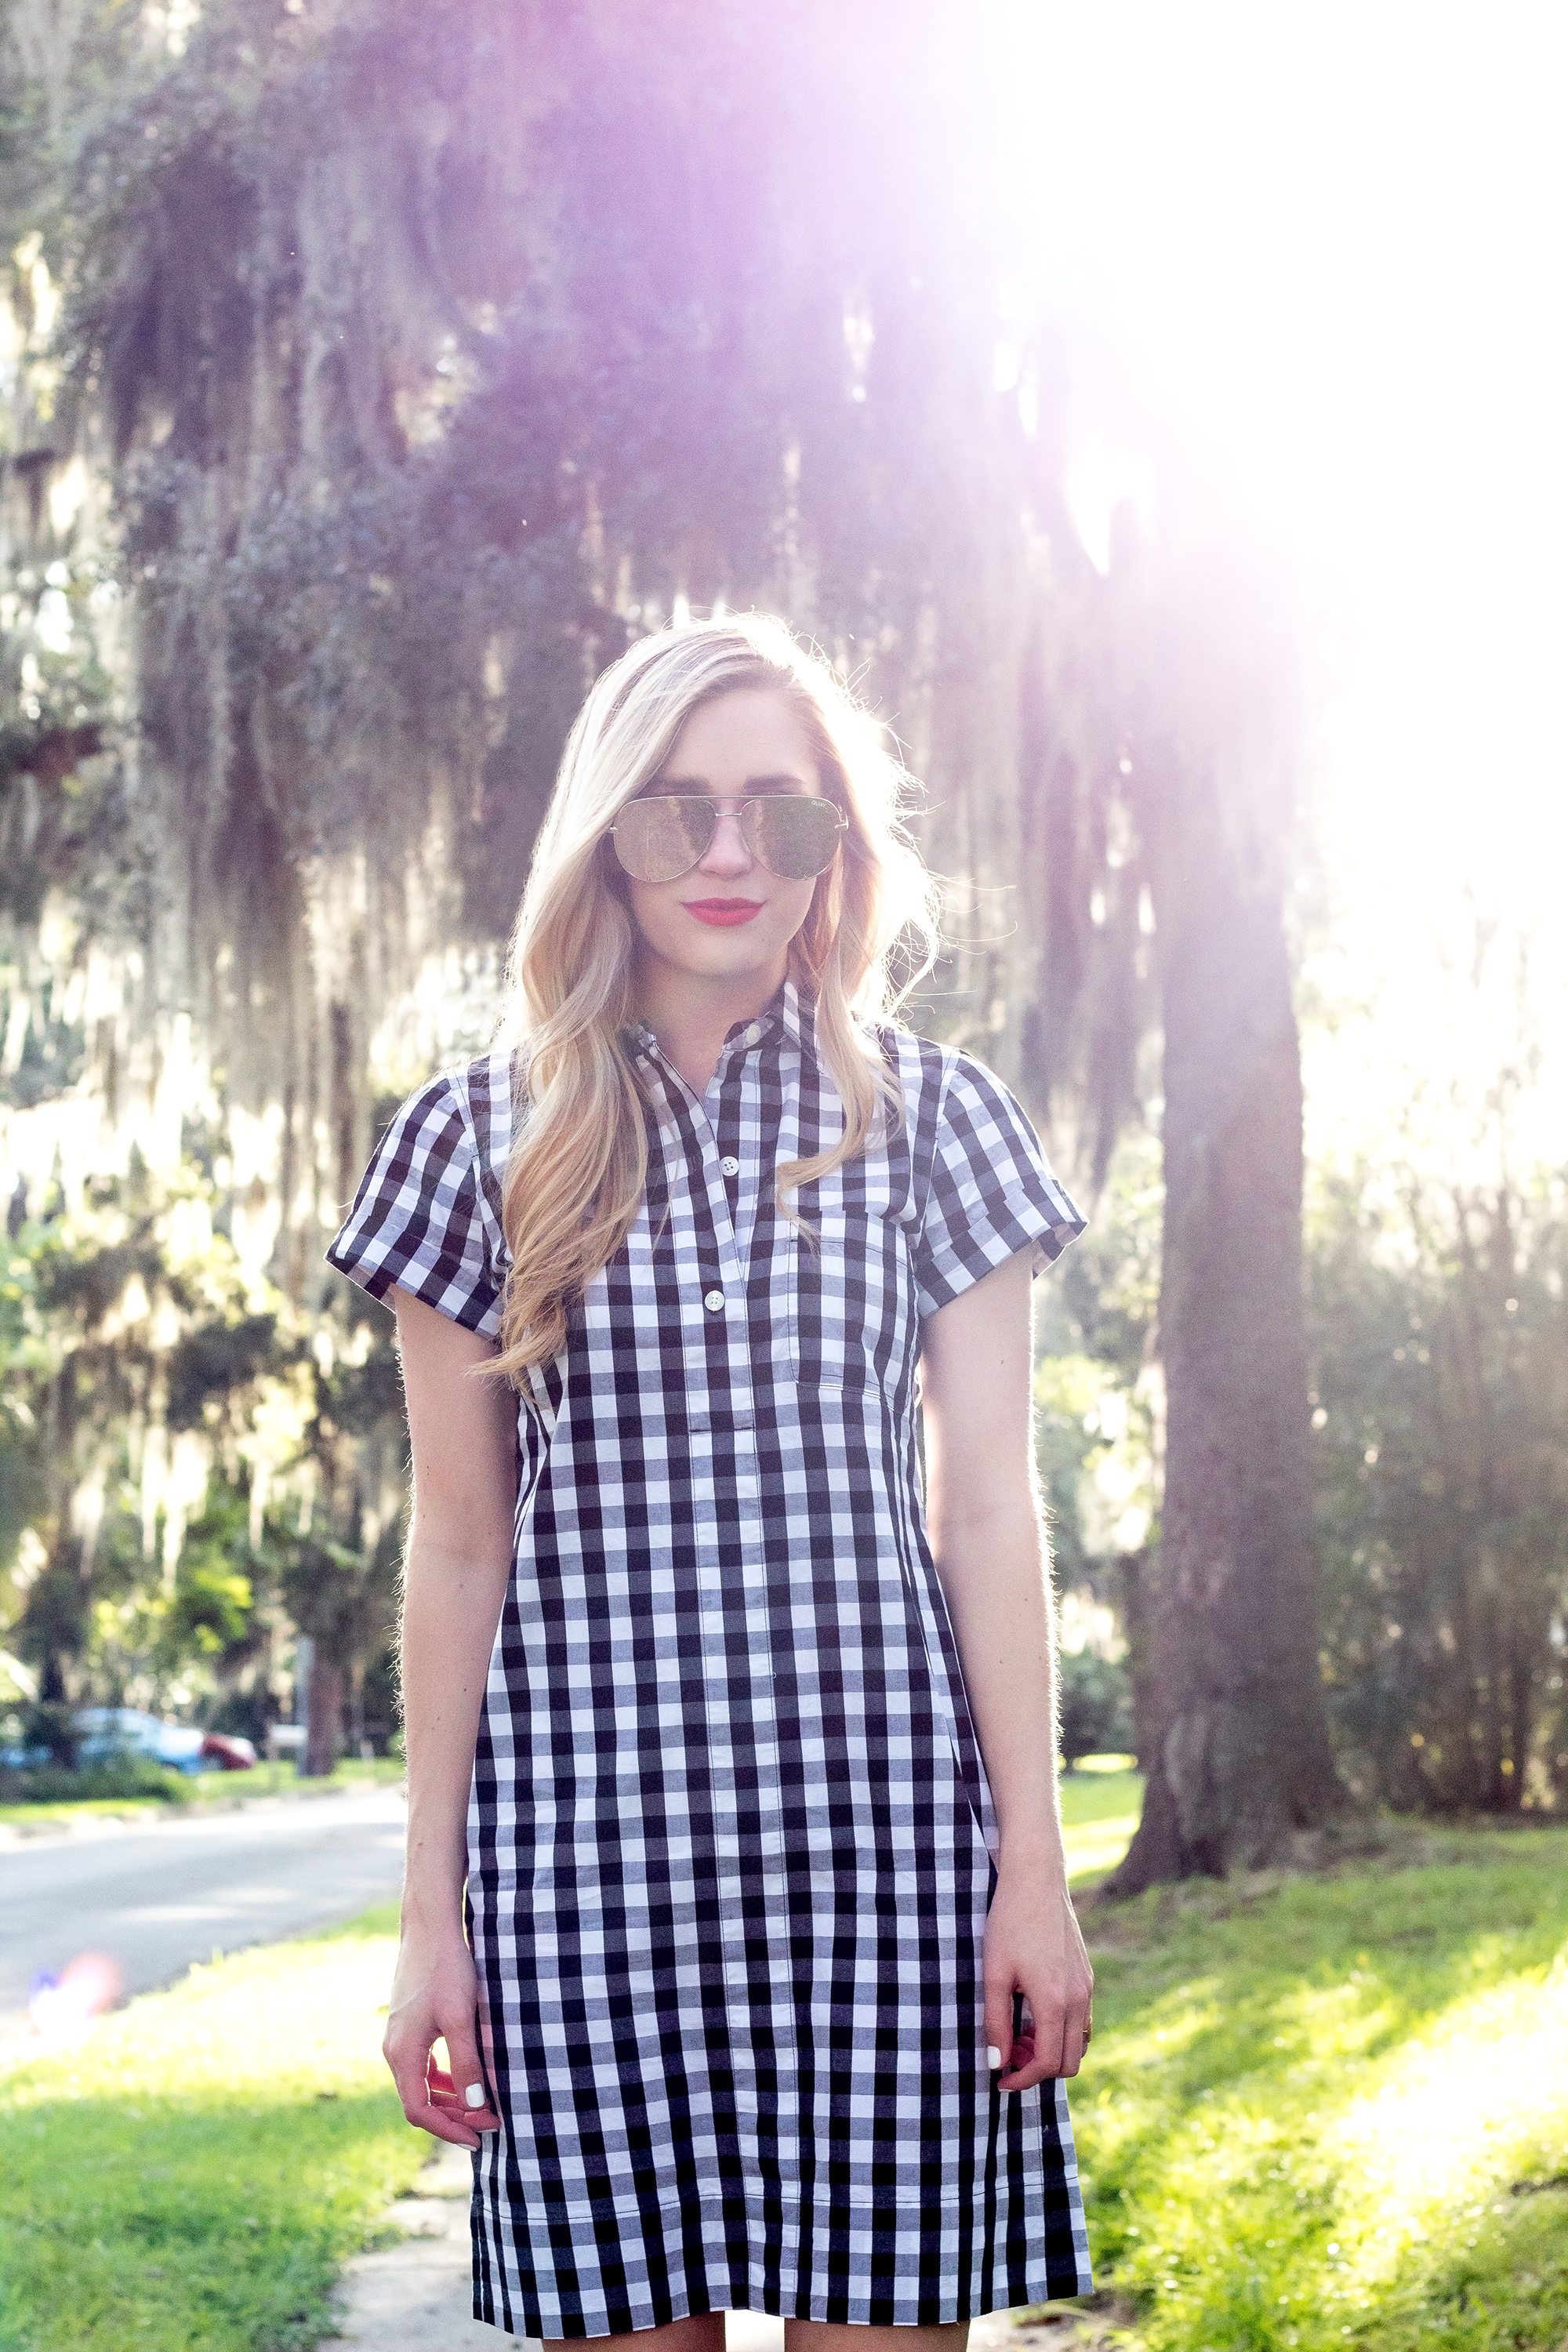 jcrew-j.crew-boxed-water-gingham-black-and-white-checkered-shirtdress-shirt-dress-ootd-styelled-elle-elisabeth-fashion-style-blogger-wiw-adidas-superstar-quay-australia-desi-perkins-05